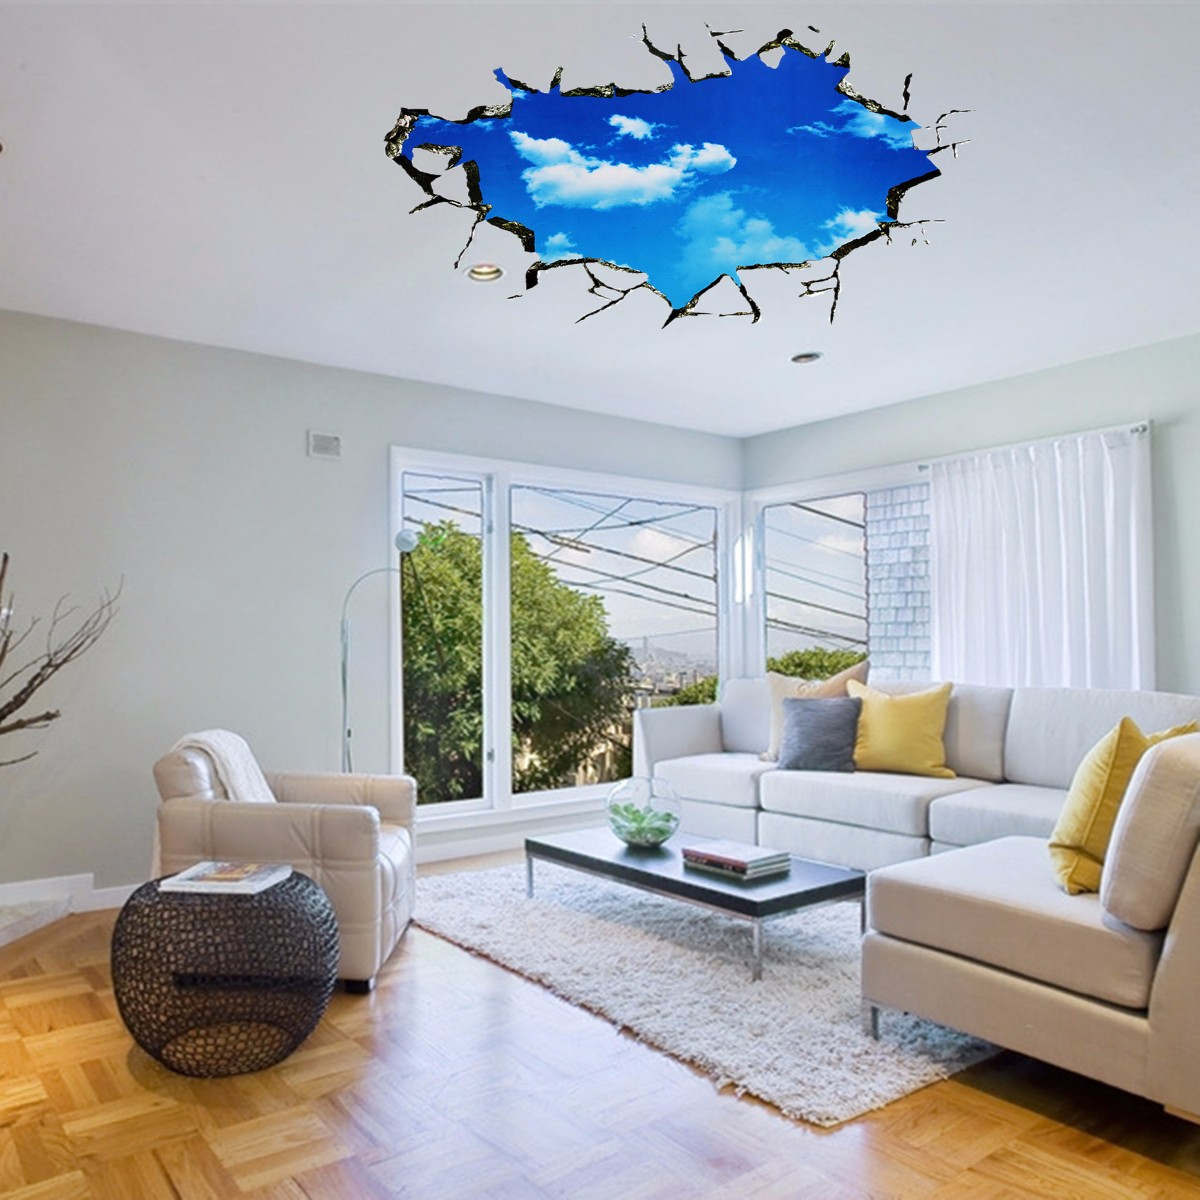 Pag blue sky 3d wall decals sticker ceiling hole sticker home bedroom wall decor gift at banggood - Images of wall decoration ...